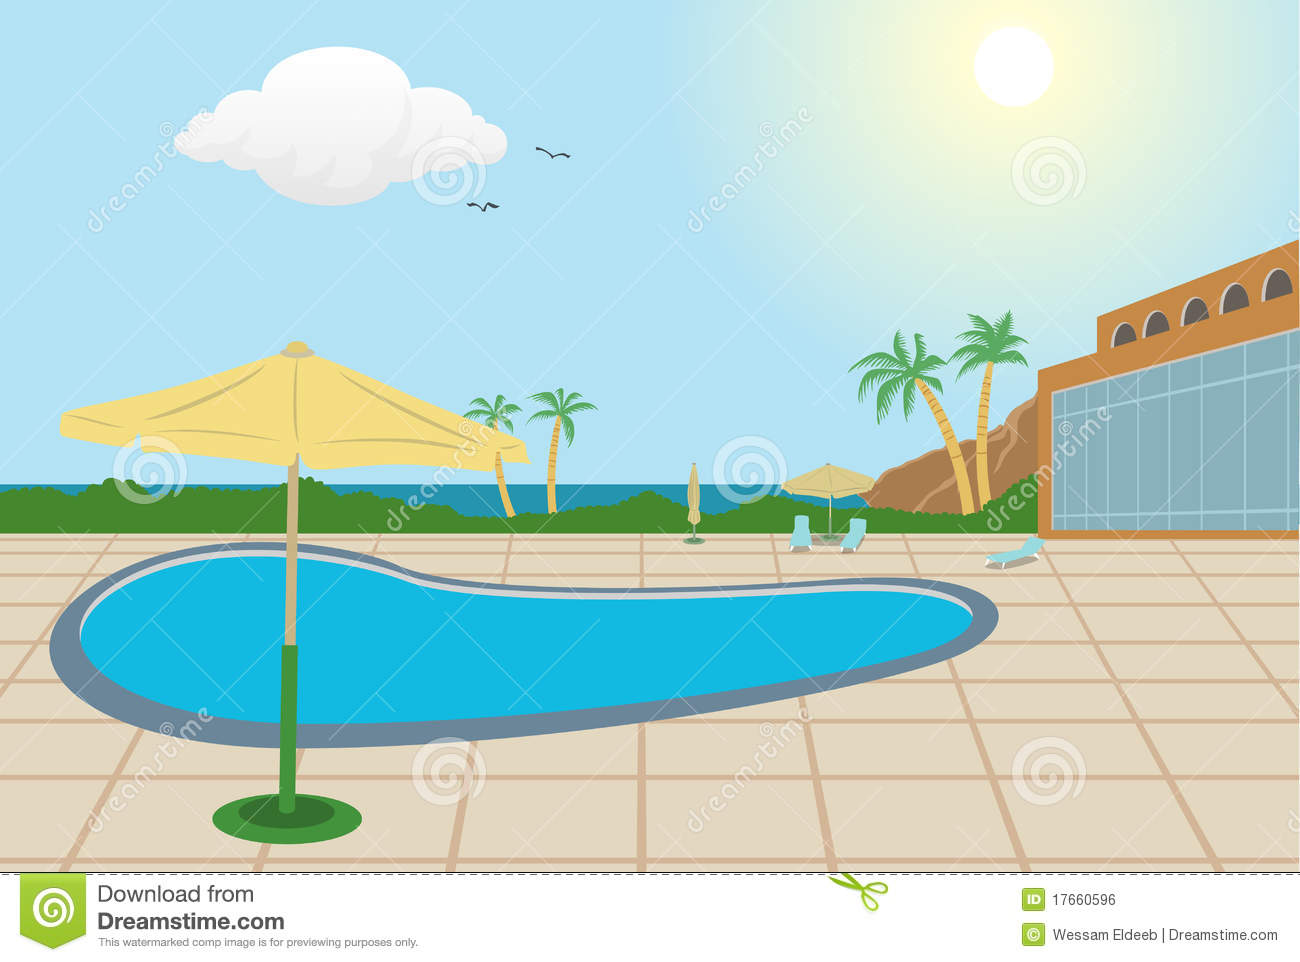 Resort Background Royalty Free Stock Image - Image: 17660596